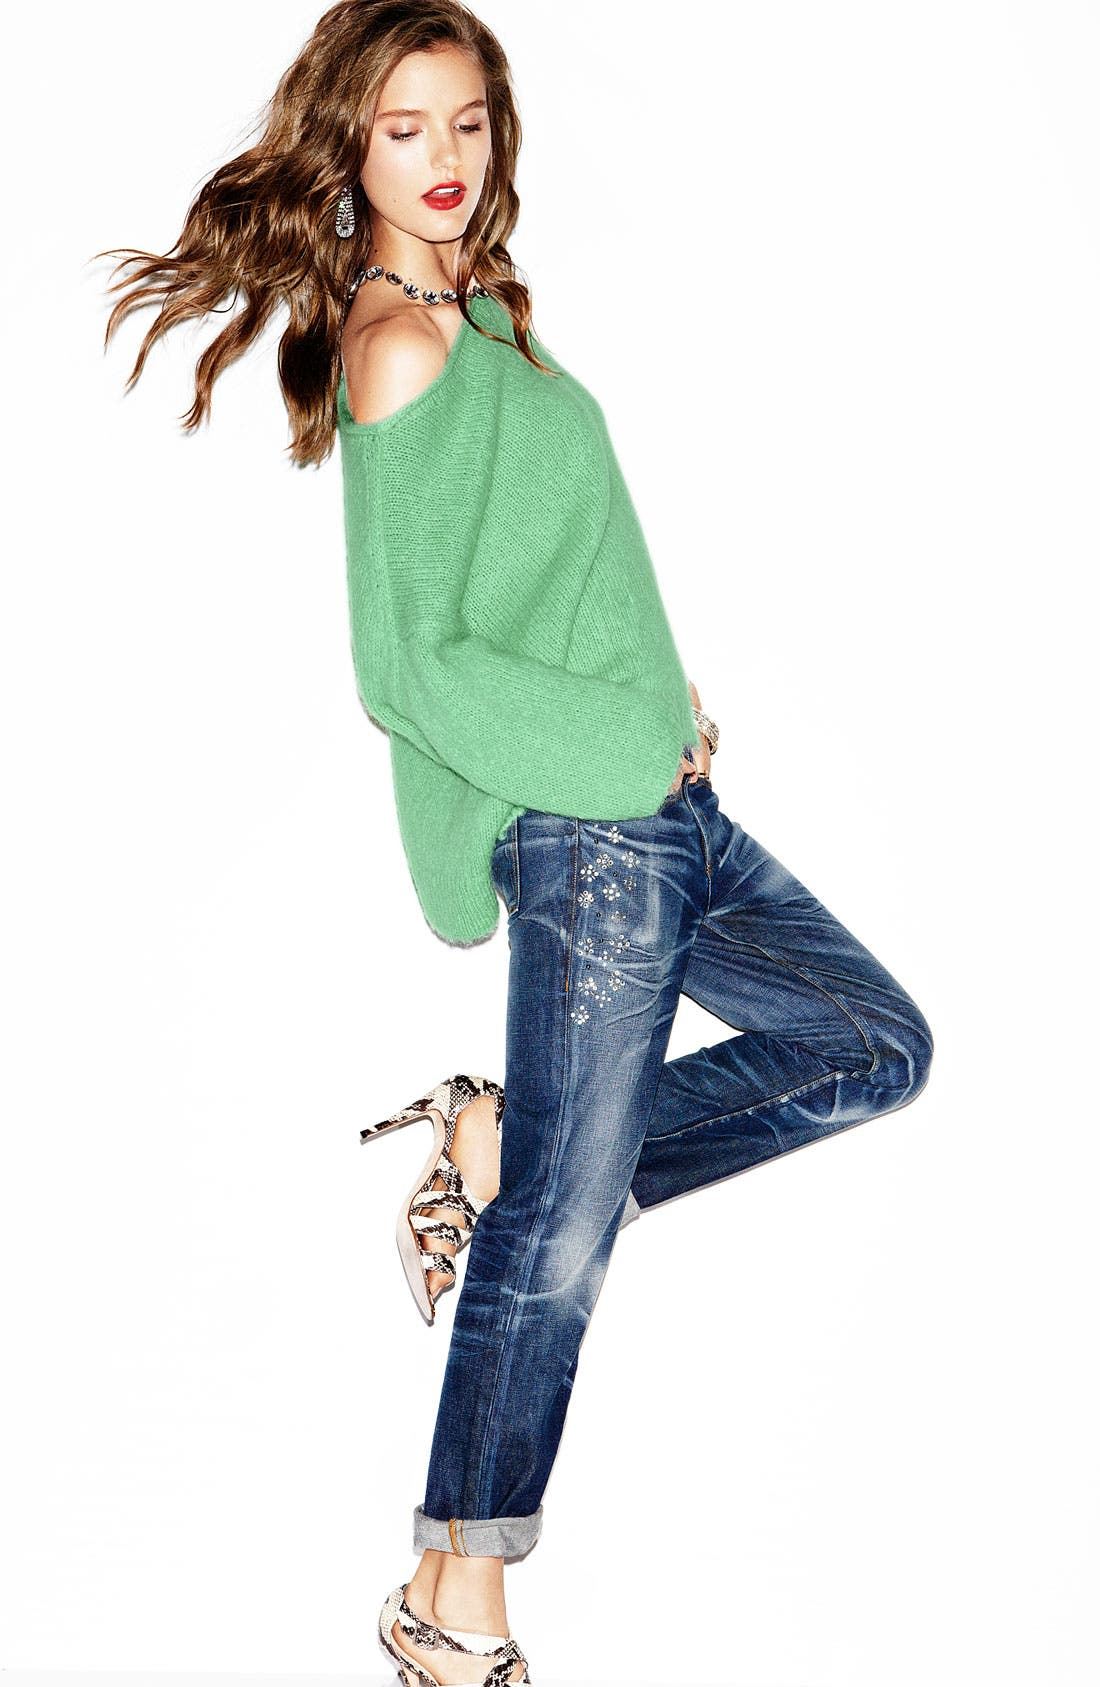 Alternate Image 1 Selected - Juicy Couture Sweater & Jeans